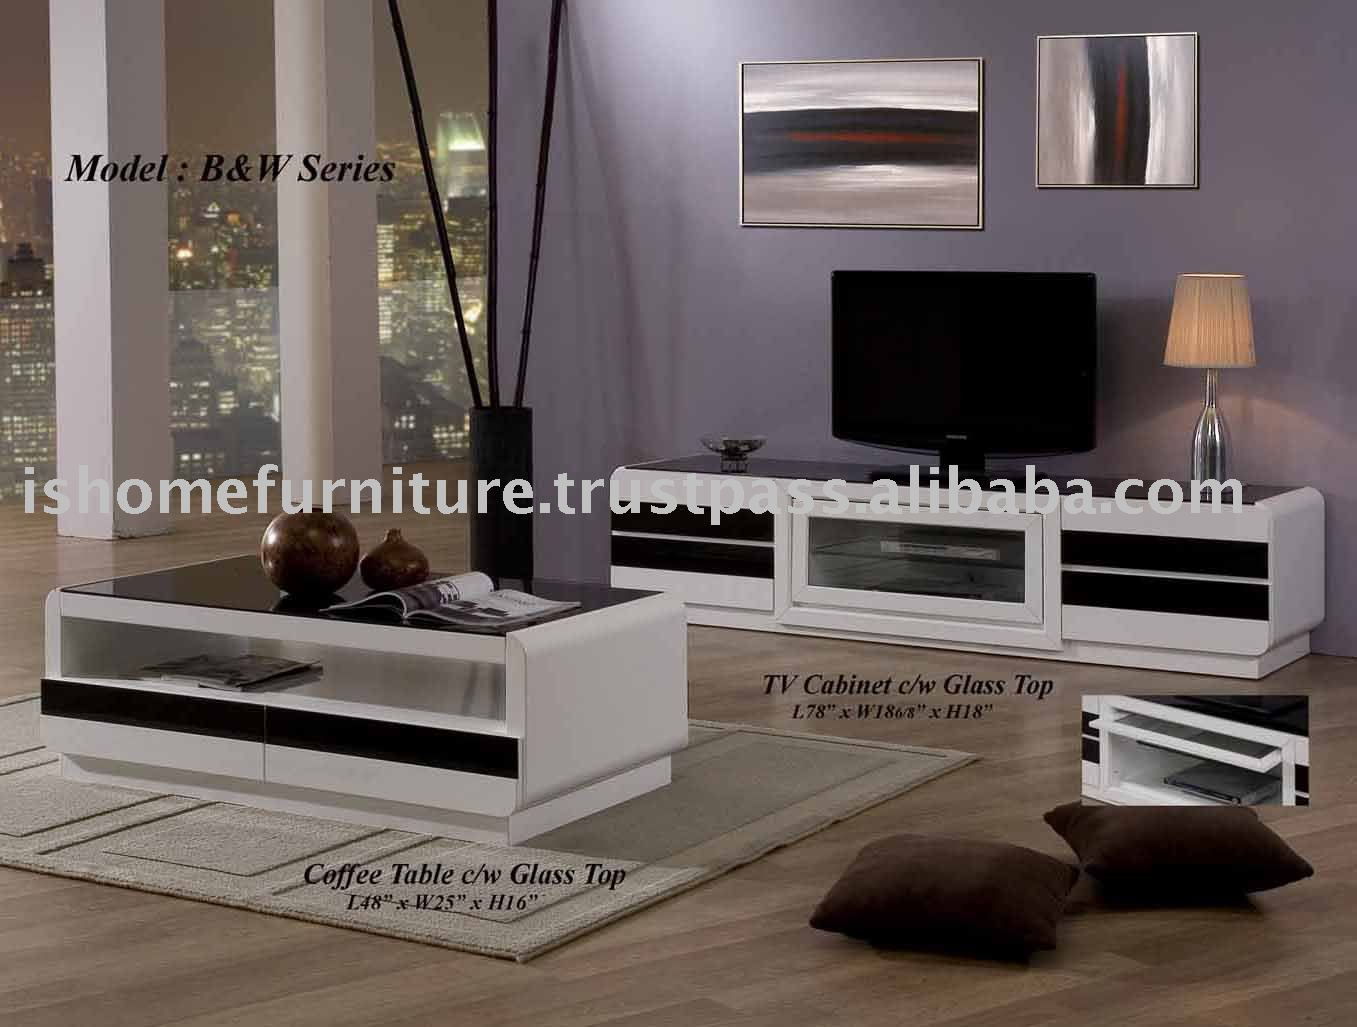 Bw series coffee tabletv stand buy home furniturecoffee bw series coffee tabletv stand buy home furniturecoffee tabletv stand furniture product on alibaba geotapseo Images